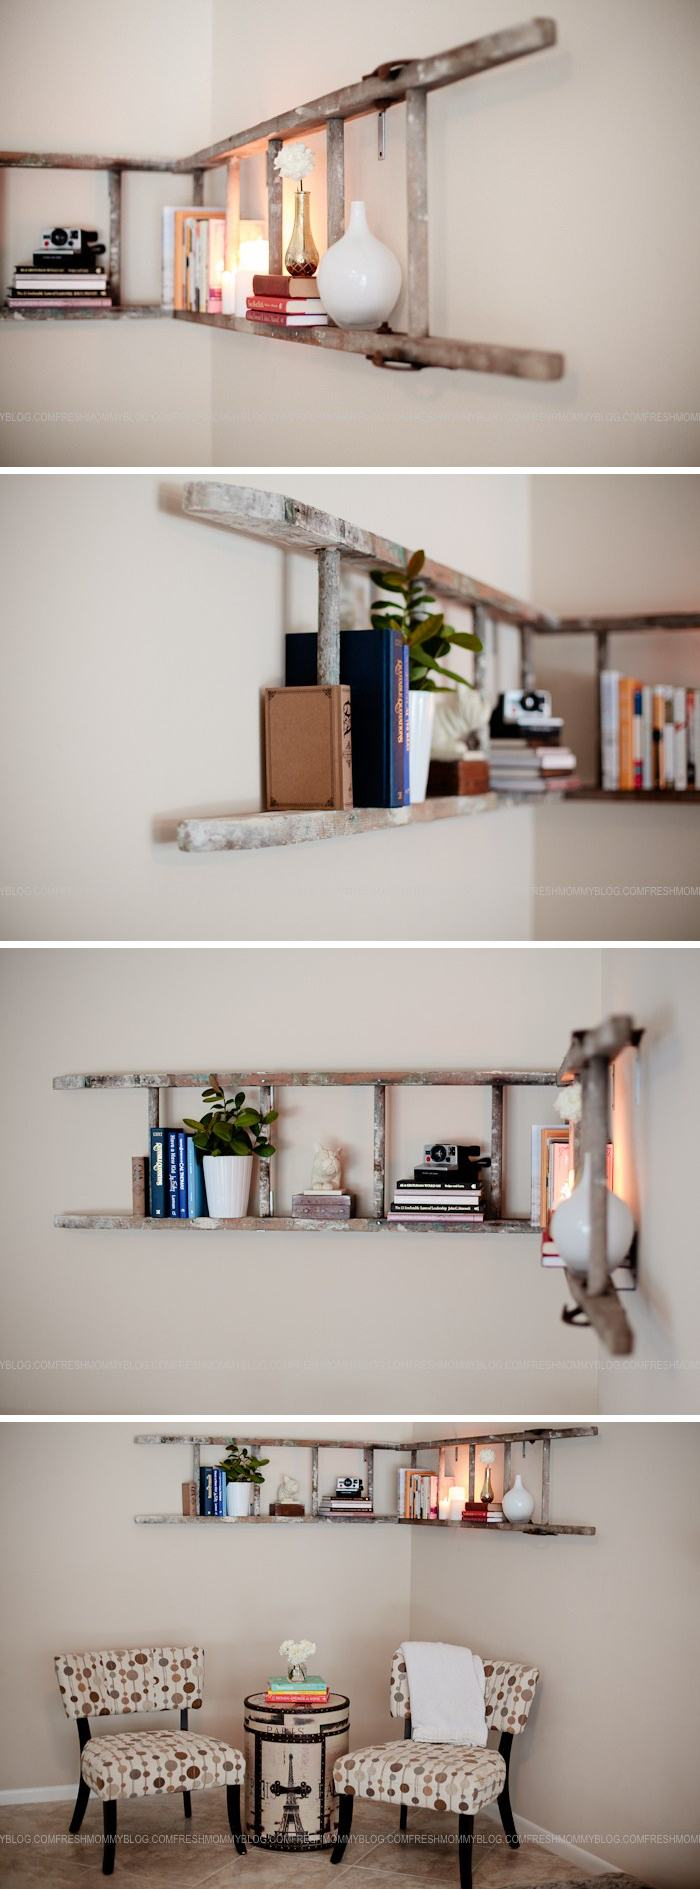 15 Inspiring Ladder Hacks For Every Room Repurpose Old Ladders Homelovr